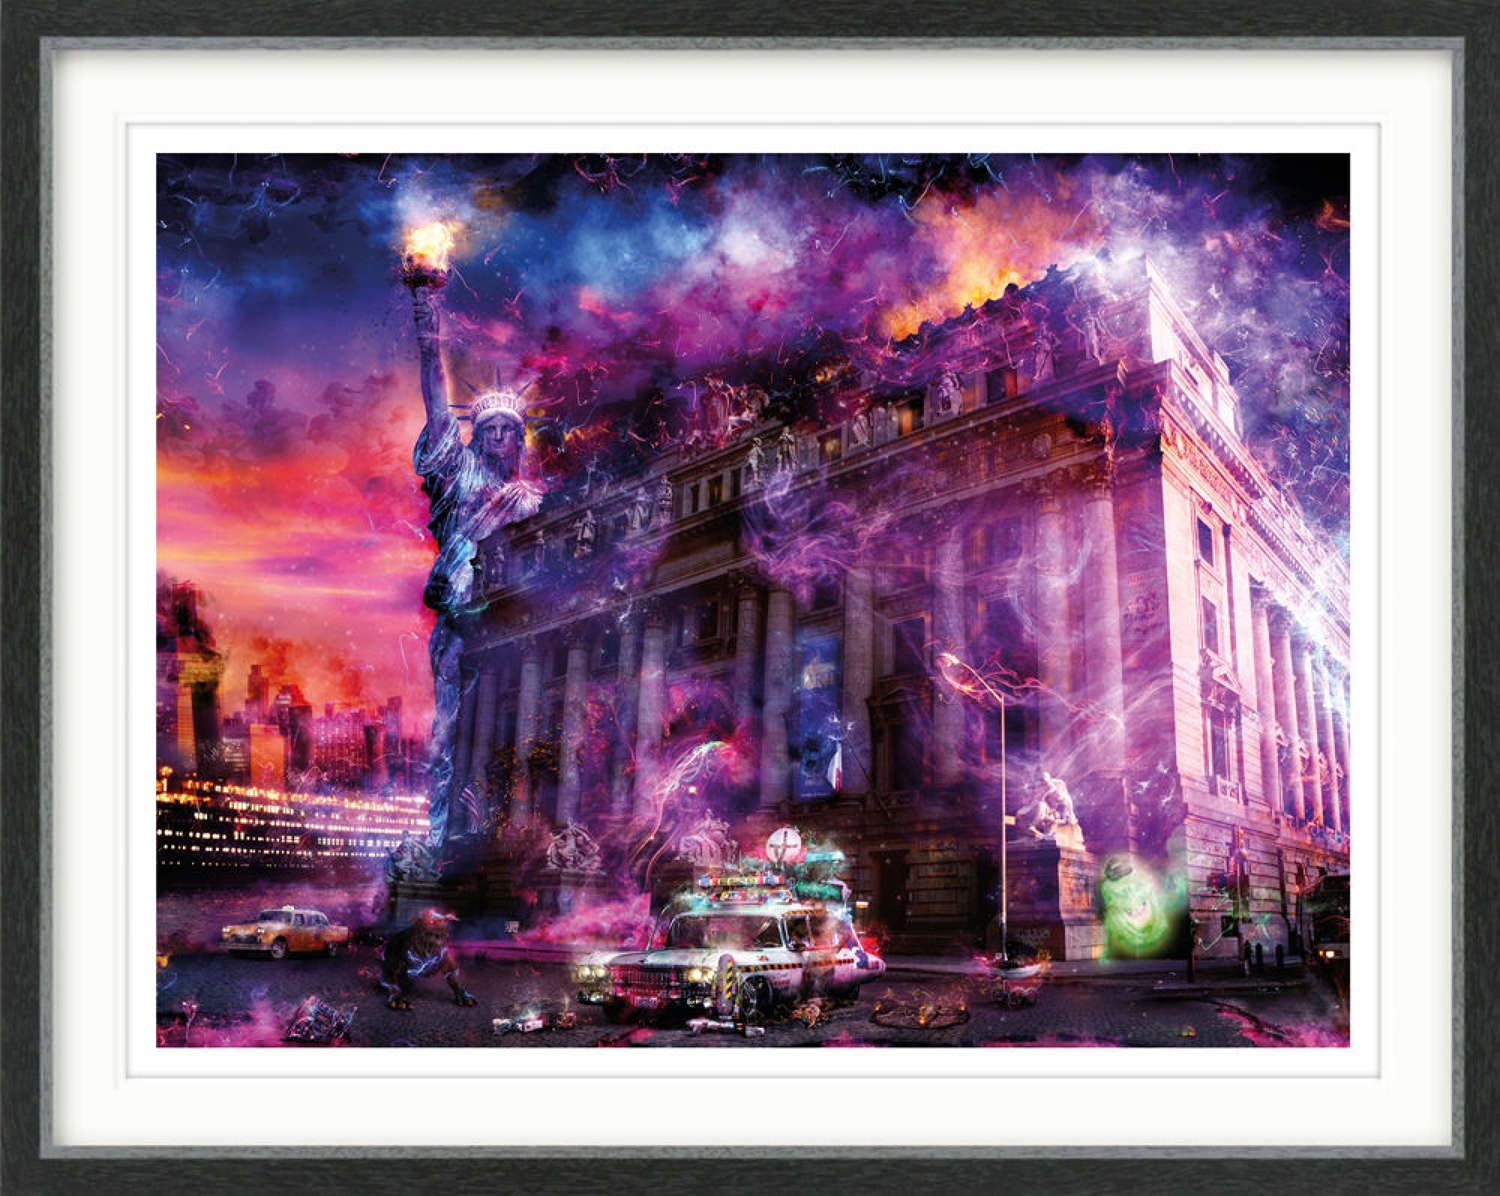 Bustin' Ghosts (Ghostbusters) - Framed Art Print by Mark Davies